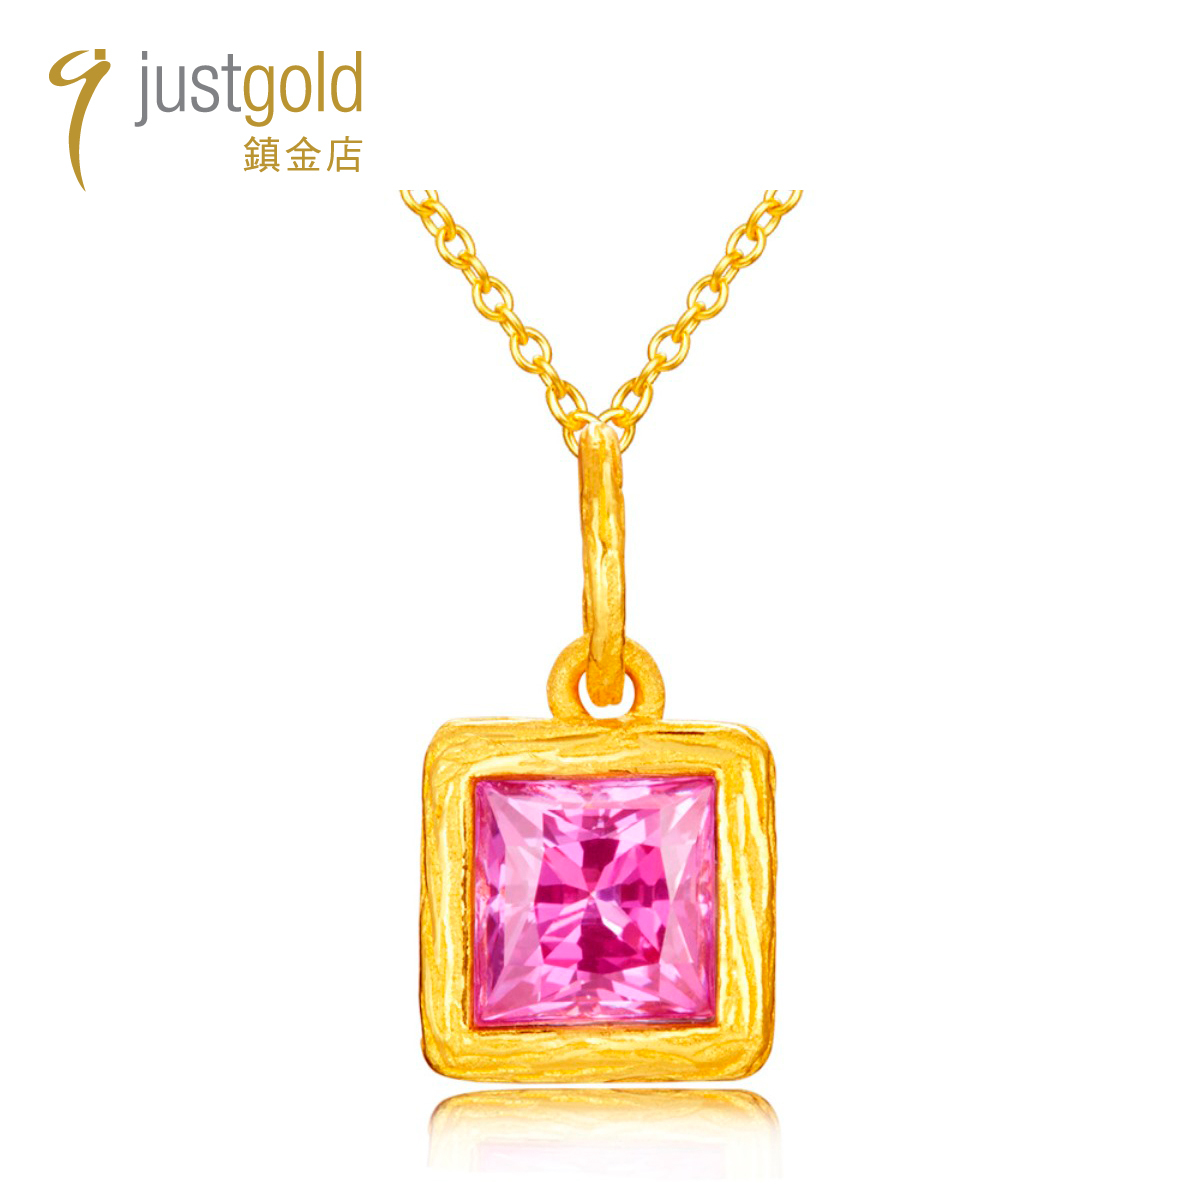 Firefly Collection: 999.9 Gold CZ Pendant(Purple)